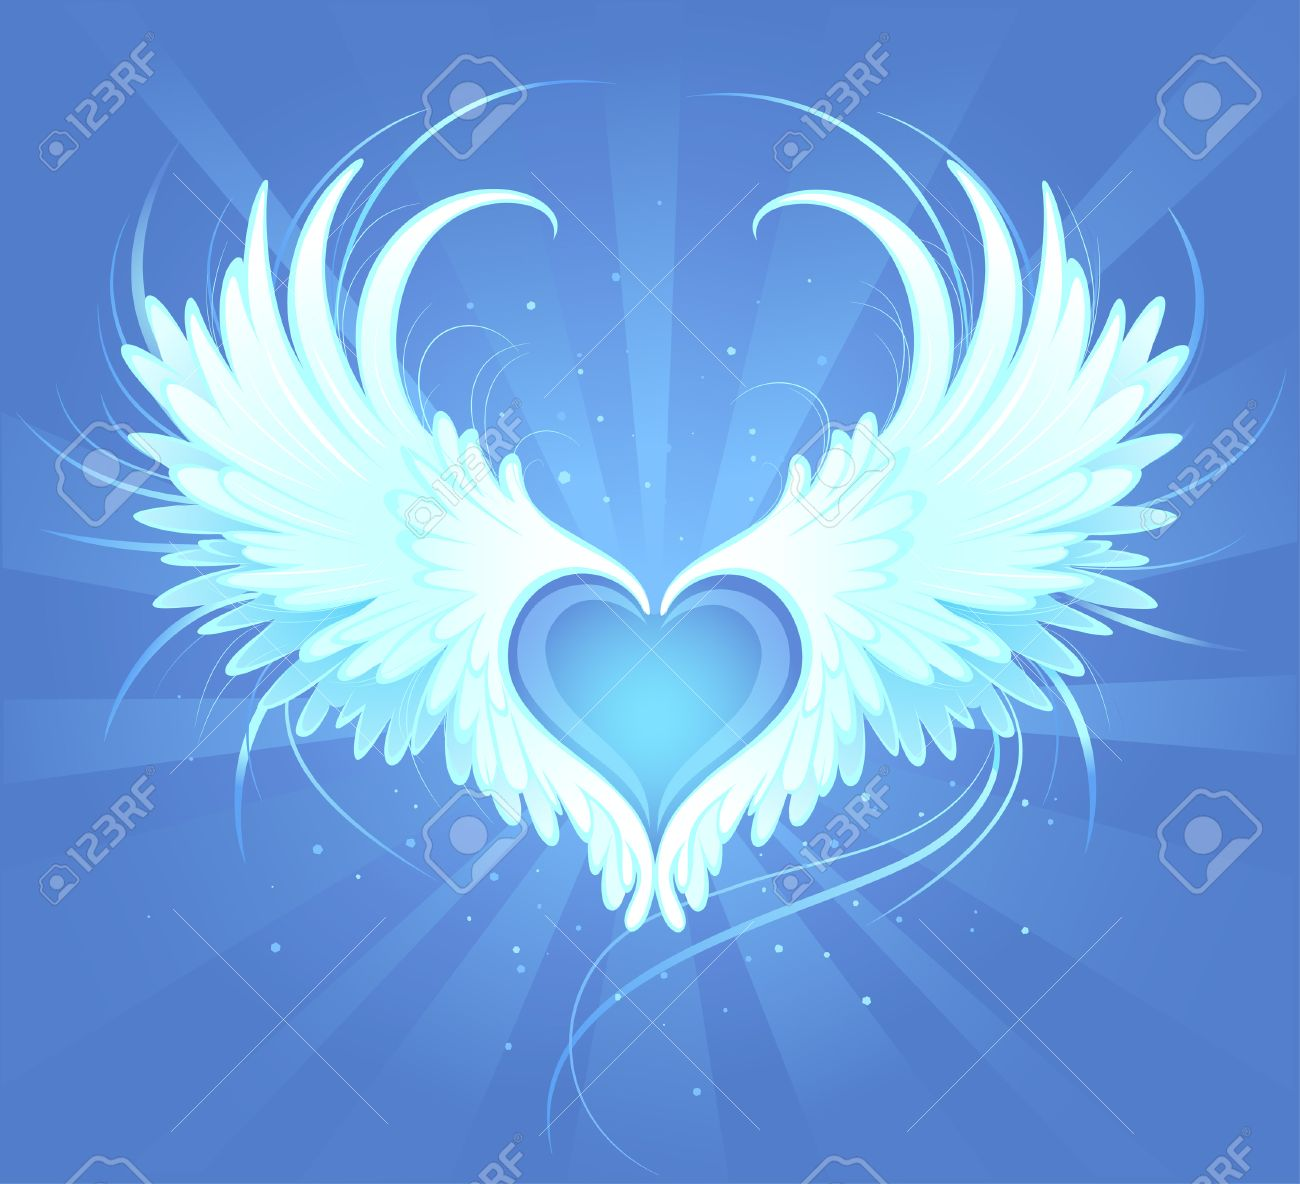 Blue heart of an angel with painted art, beautiful white wings on a blue background radiant Stock Vector - 23506285